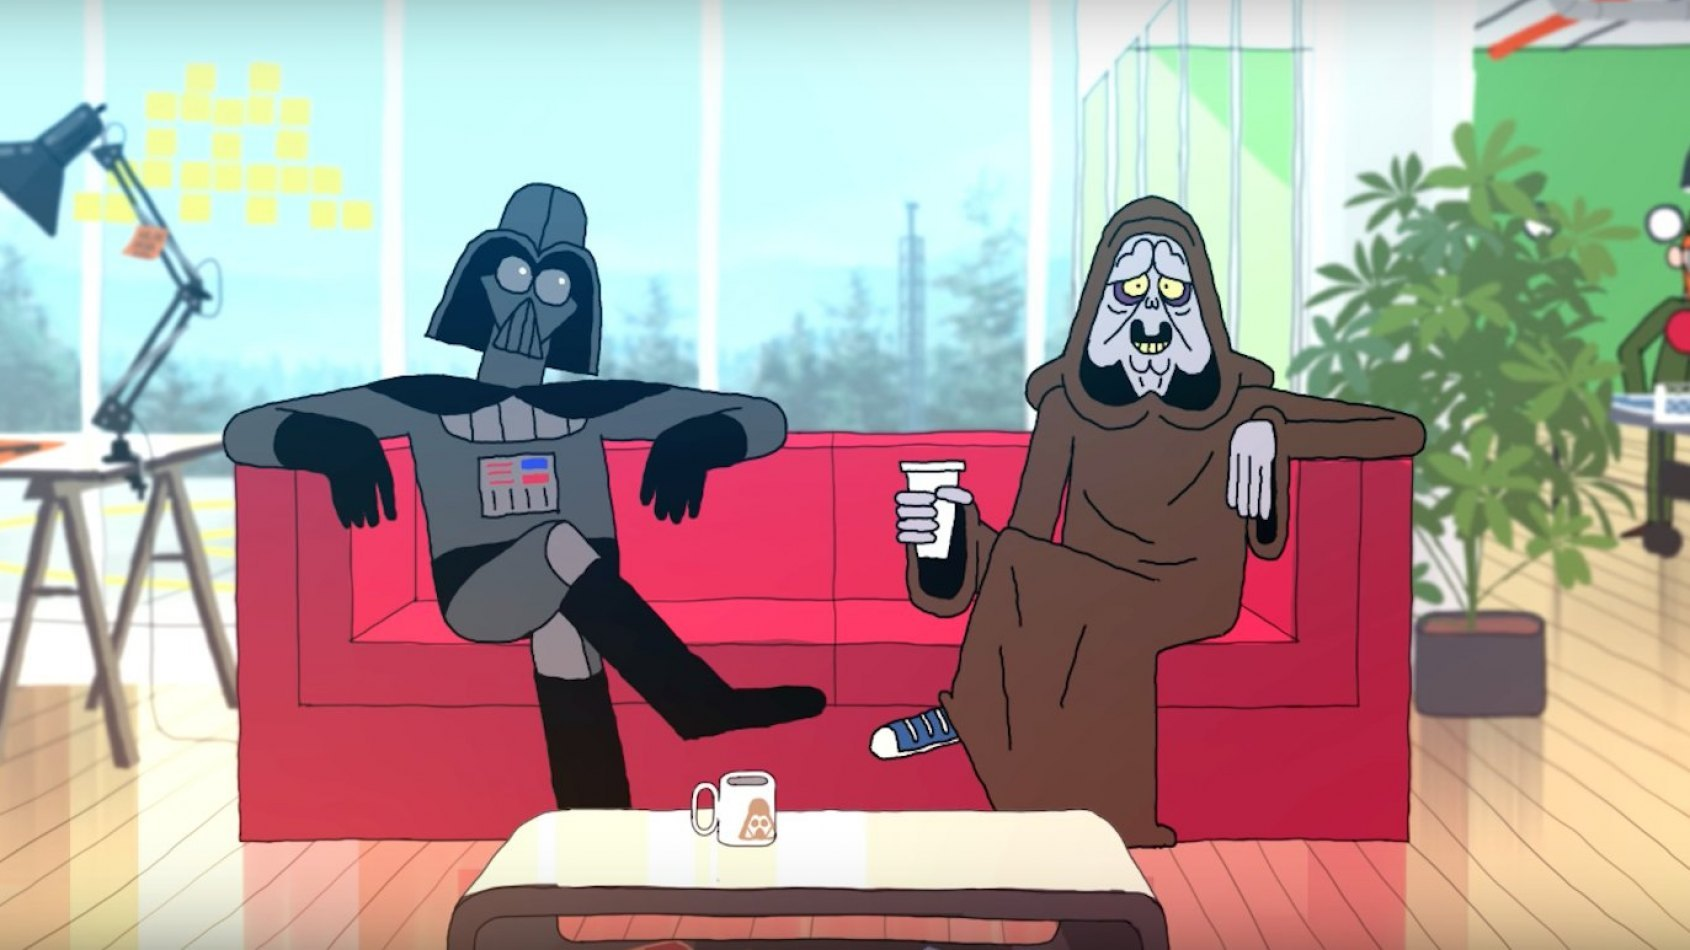 Dark Vador et Palpatine ouvrent une start-up